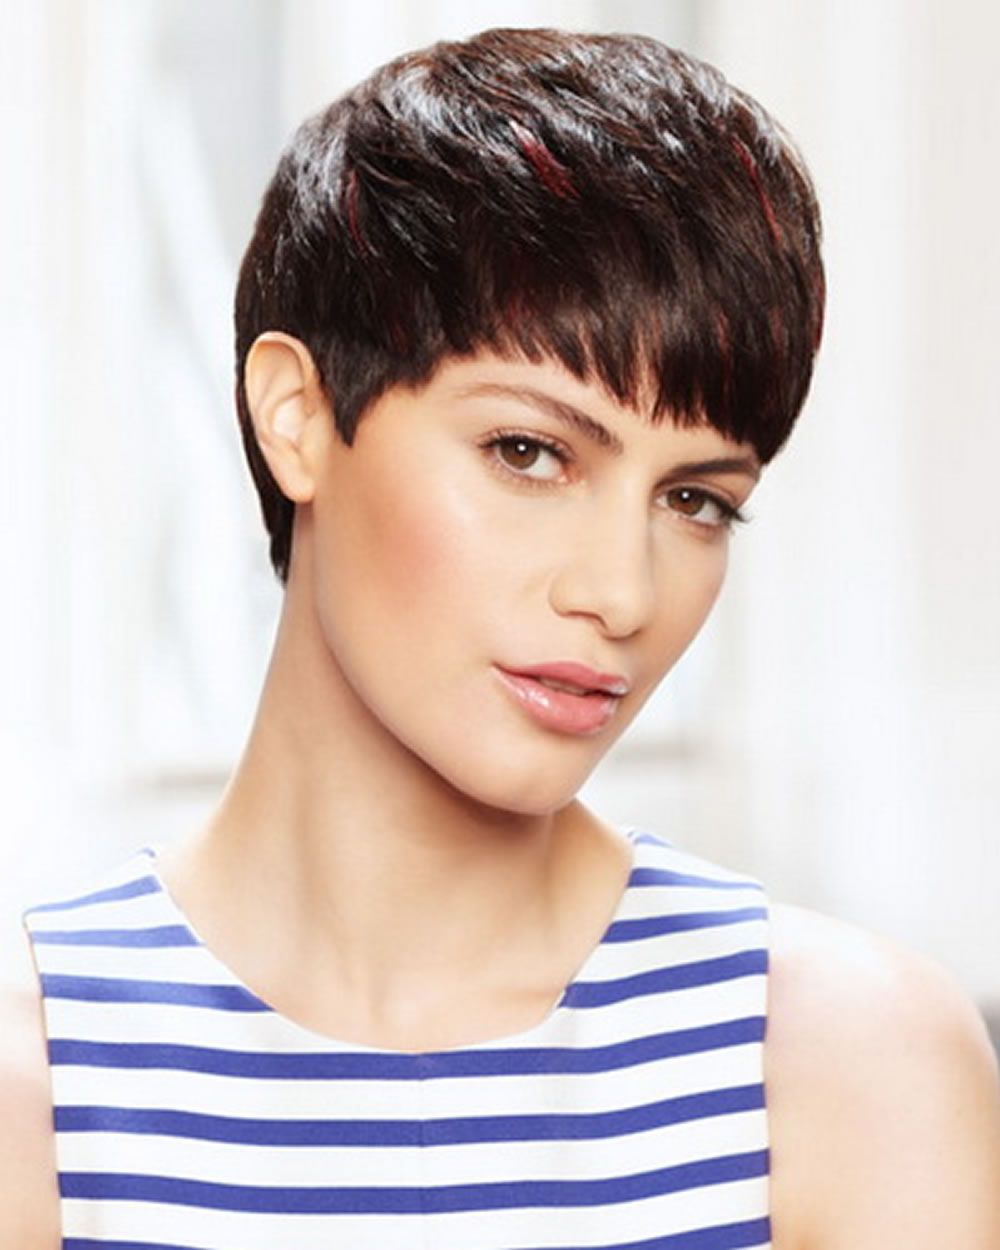 Short hairstyles and pixie hair cut images for women short